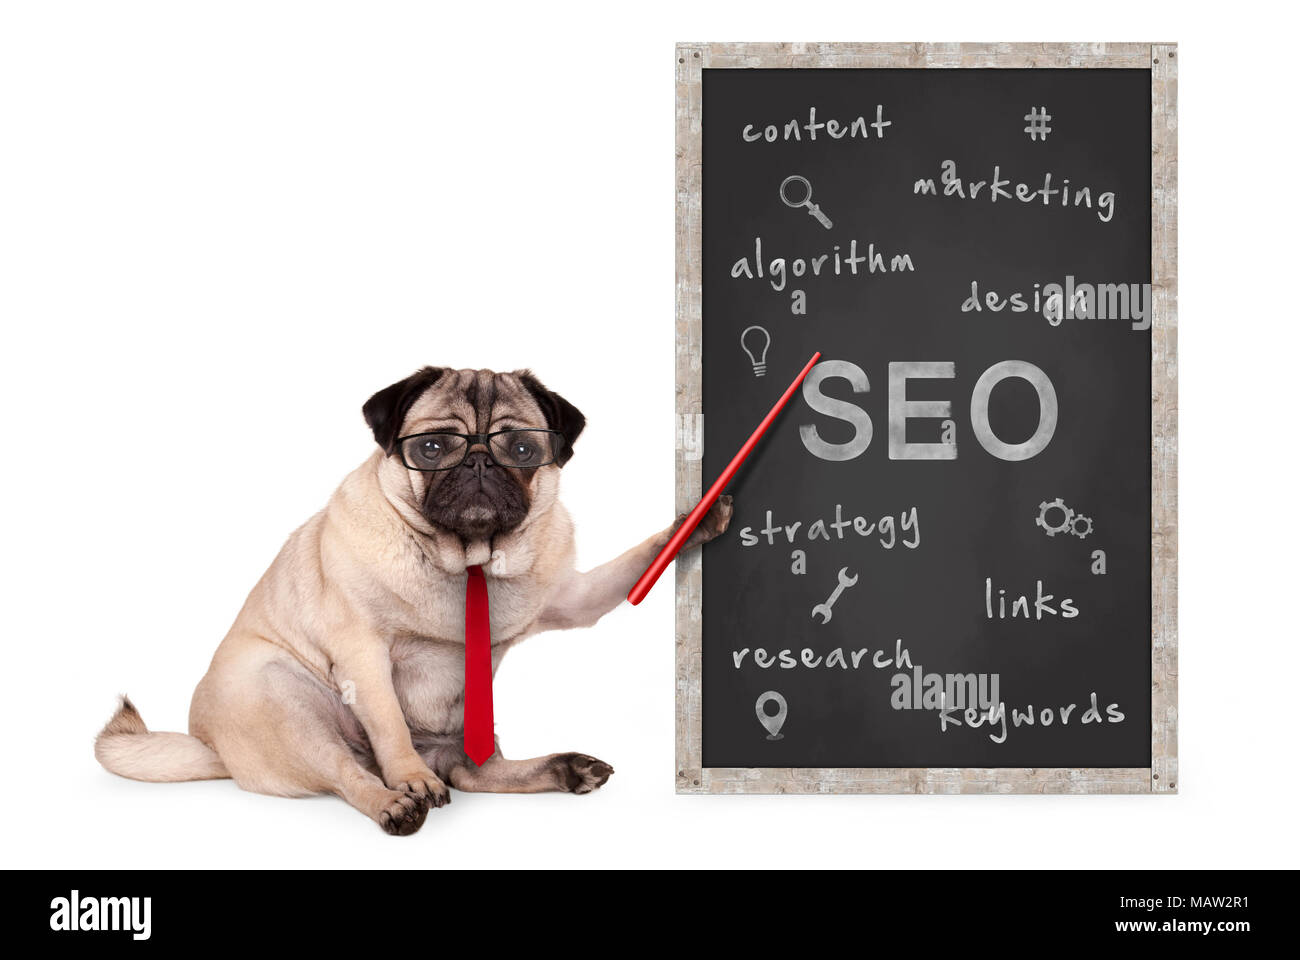 business pug dog holding red pointer, pointing out  search engine optimization, SEO, performance strategy, hand drawn on chalkboard, isolated on whiteStock Photo